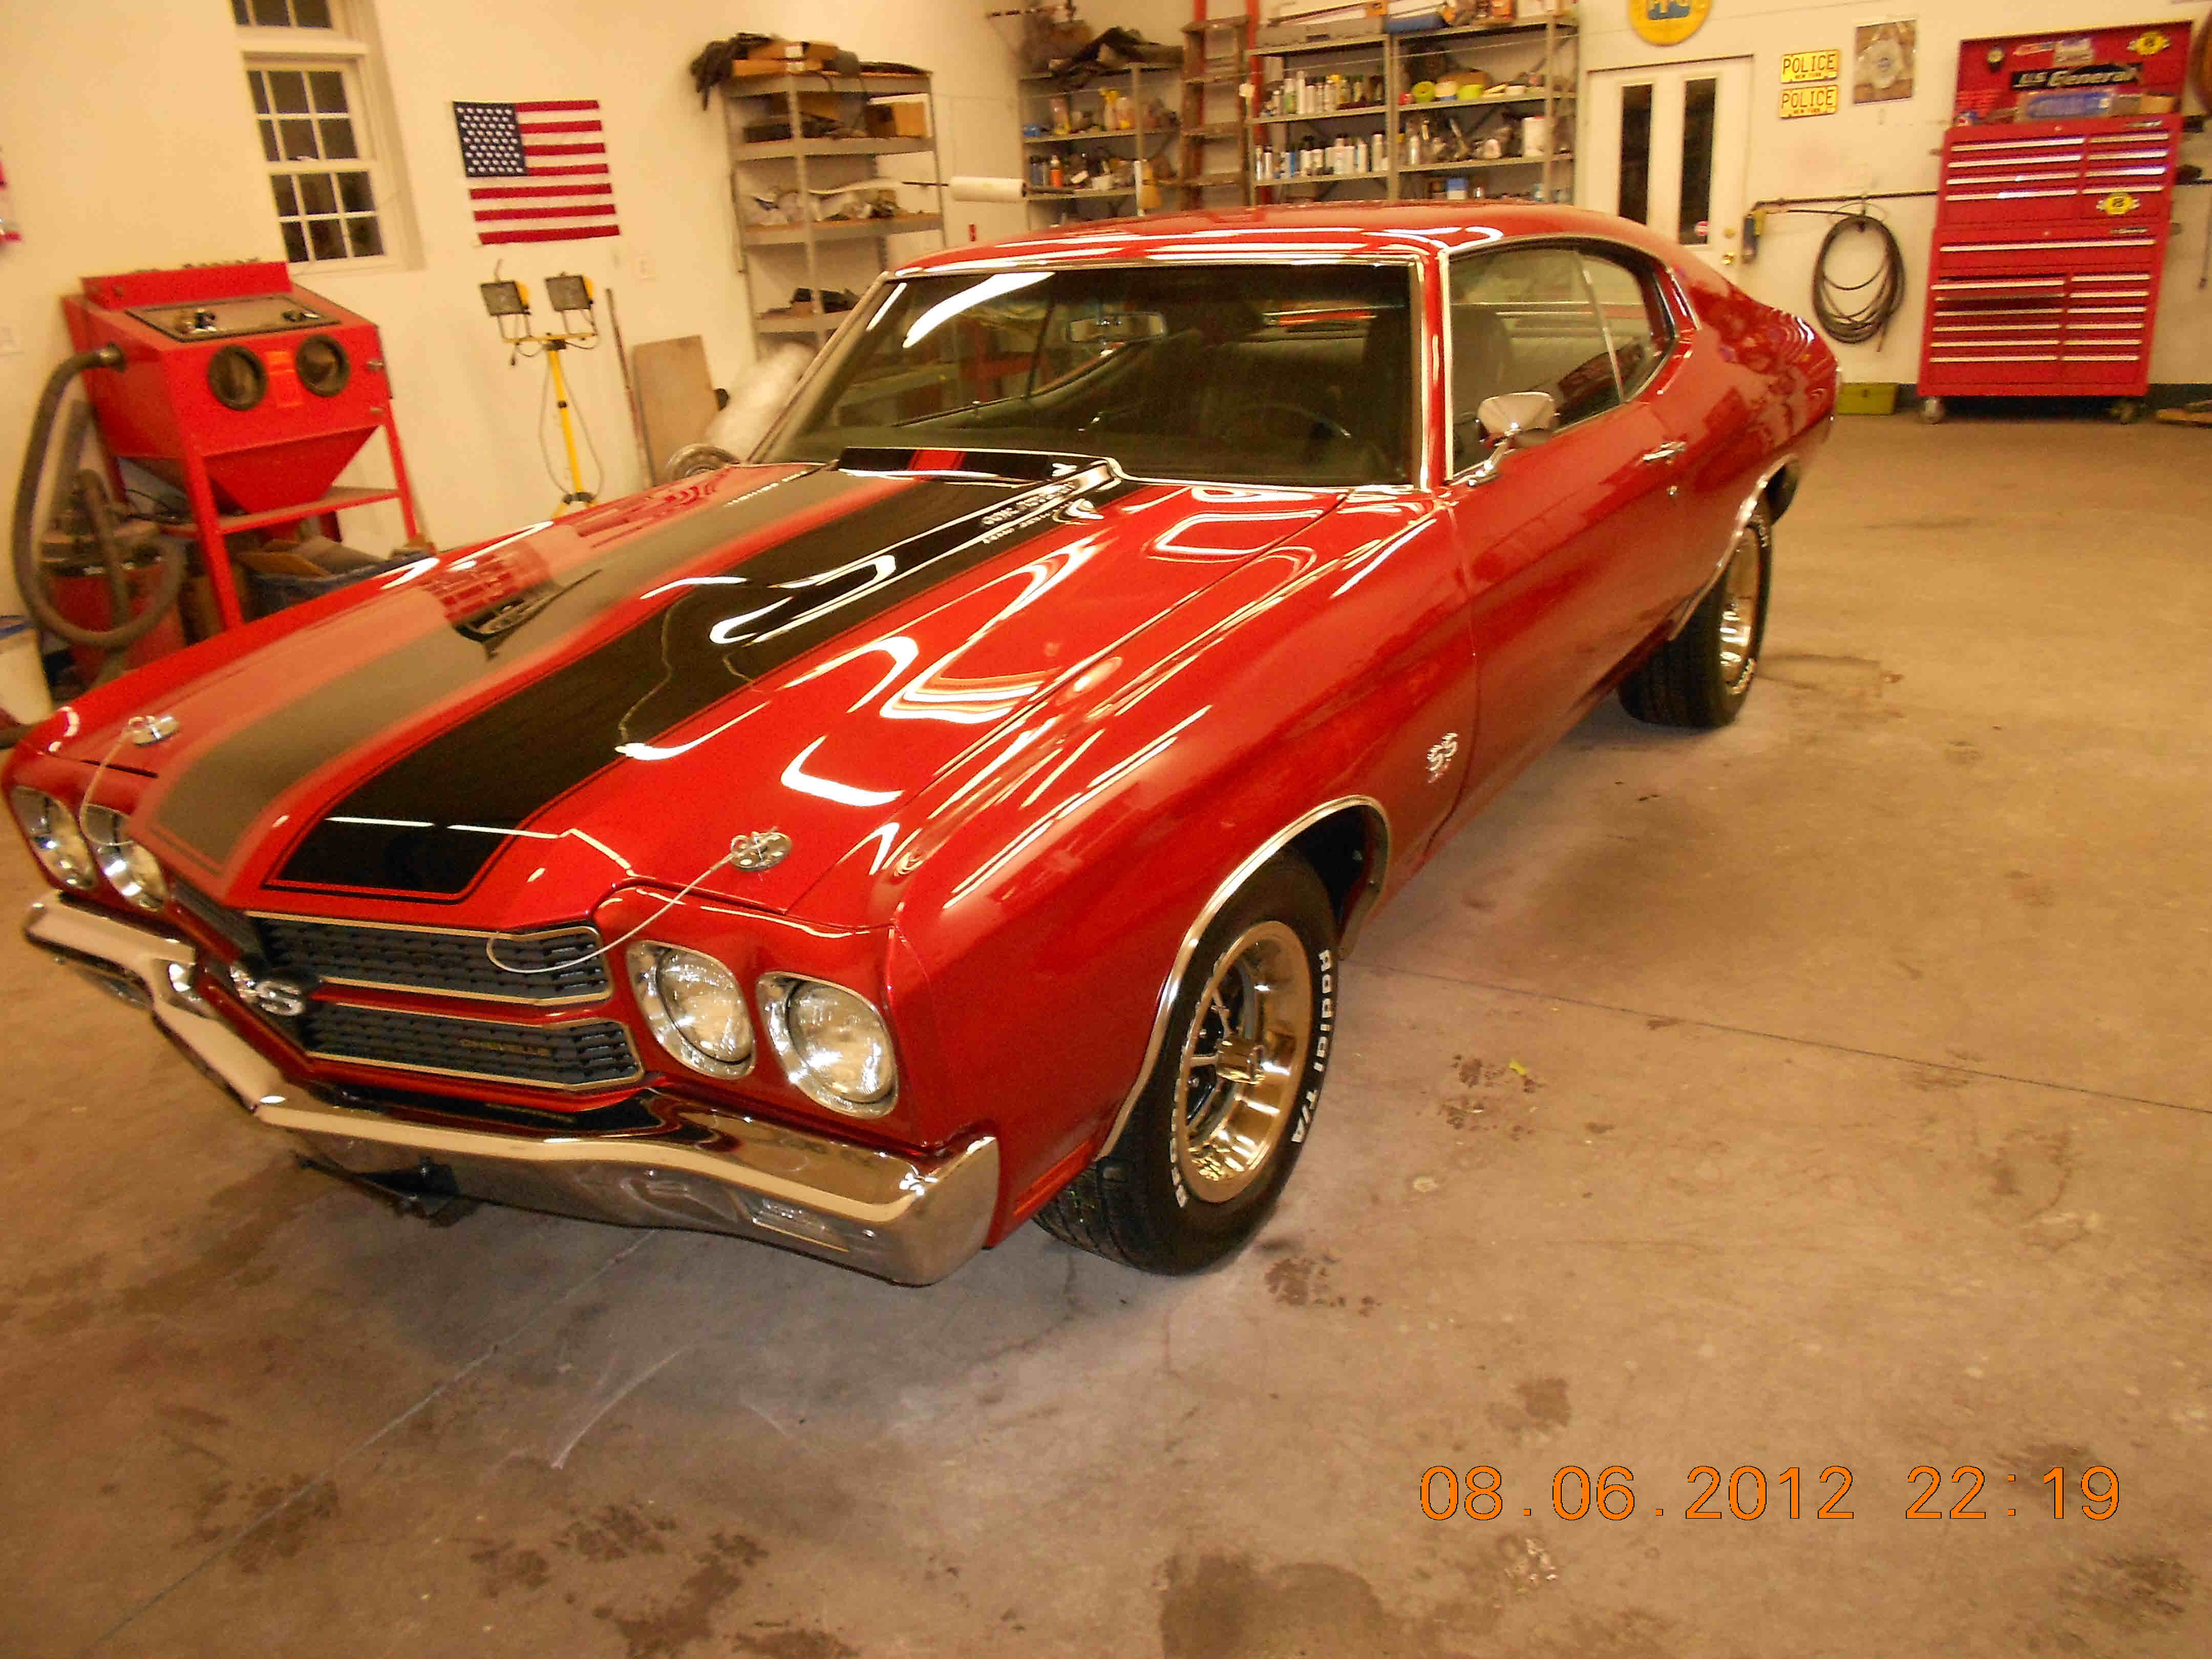 YOUR CARS: Vince Tripoli's 1970 Chevy Chevelle SS thumbnail